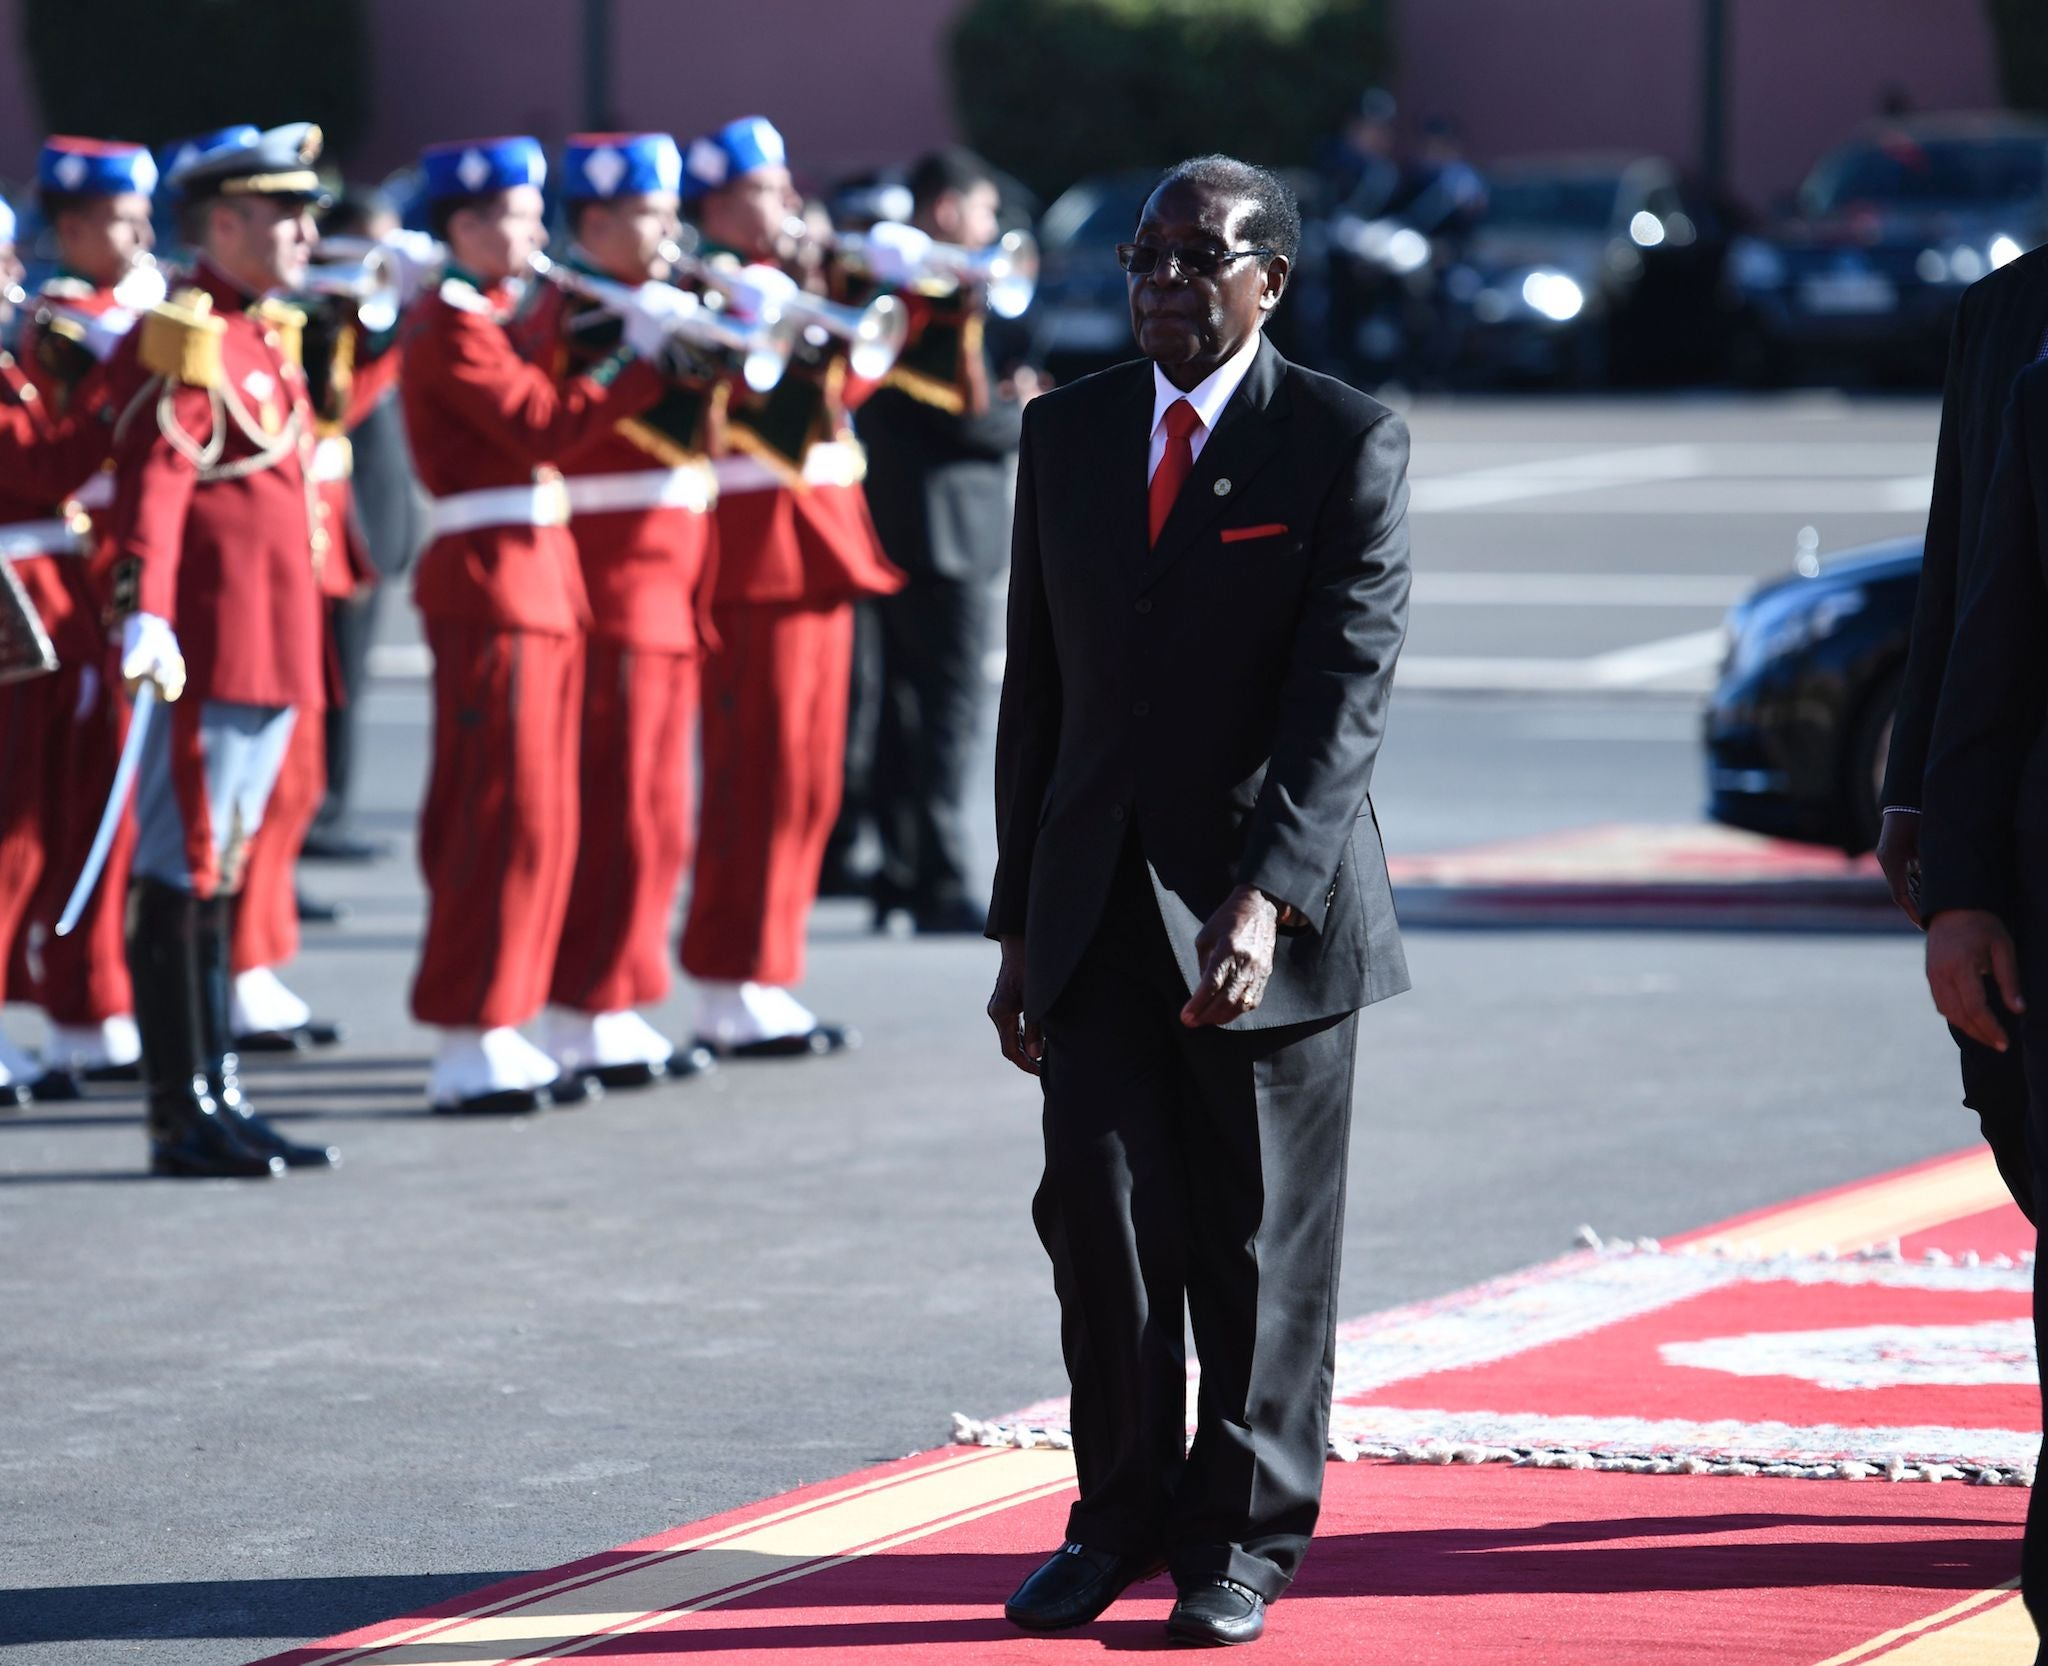 Robert Mugabe Admits It Is Time For Regime Change And Hints He Will Retire The Independent